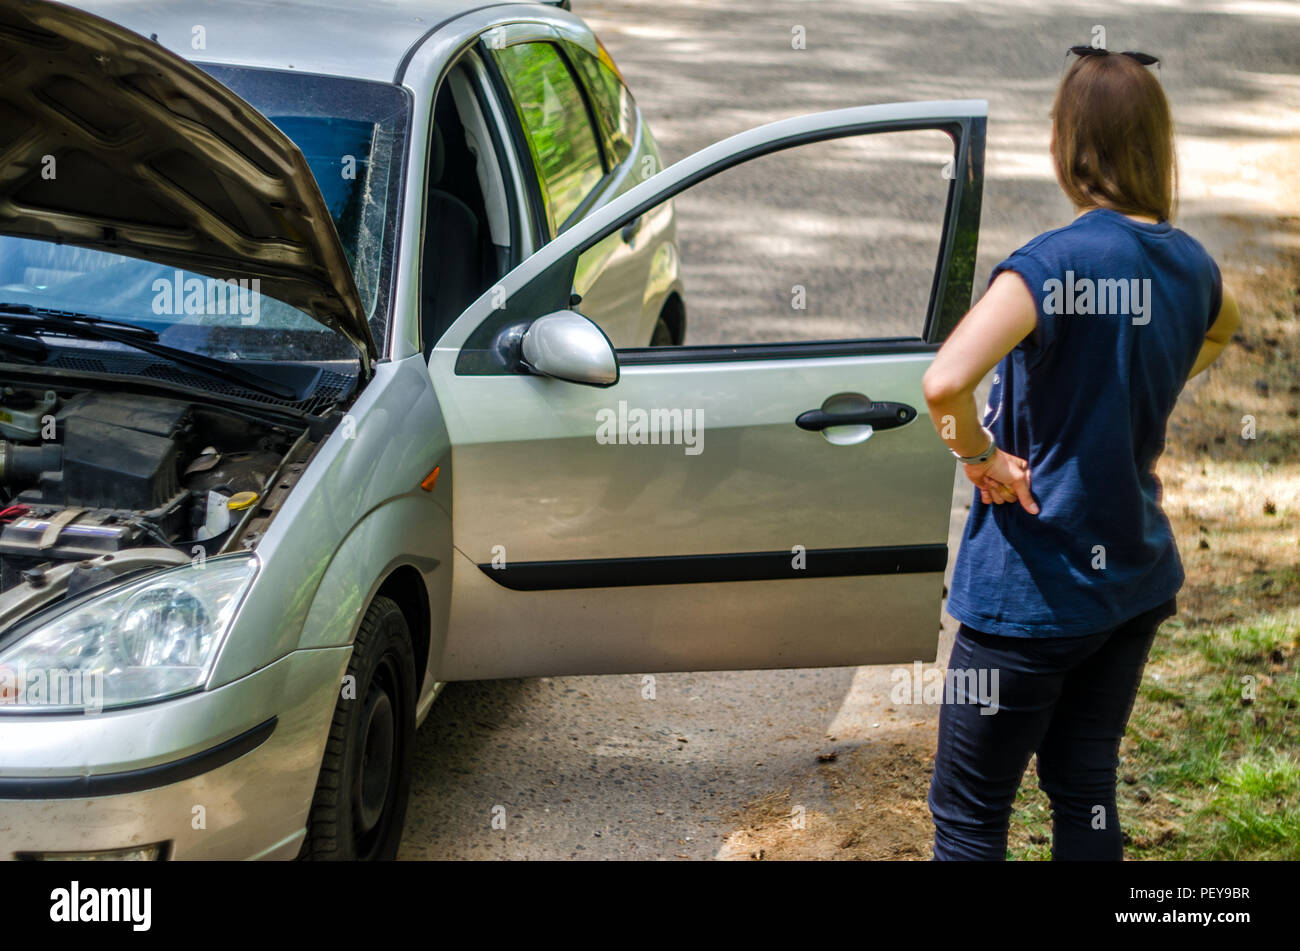 Girl driver near the open hood of a broken car. Broken car on the roadside with an open hood, trunk and doors. - Stock Image